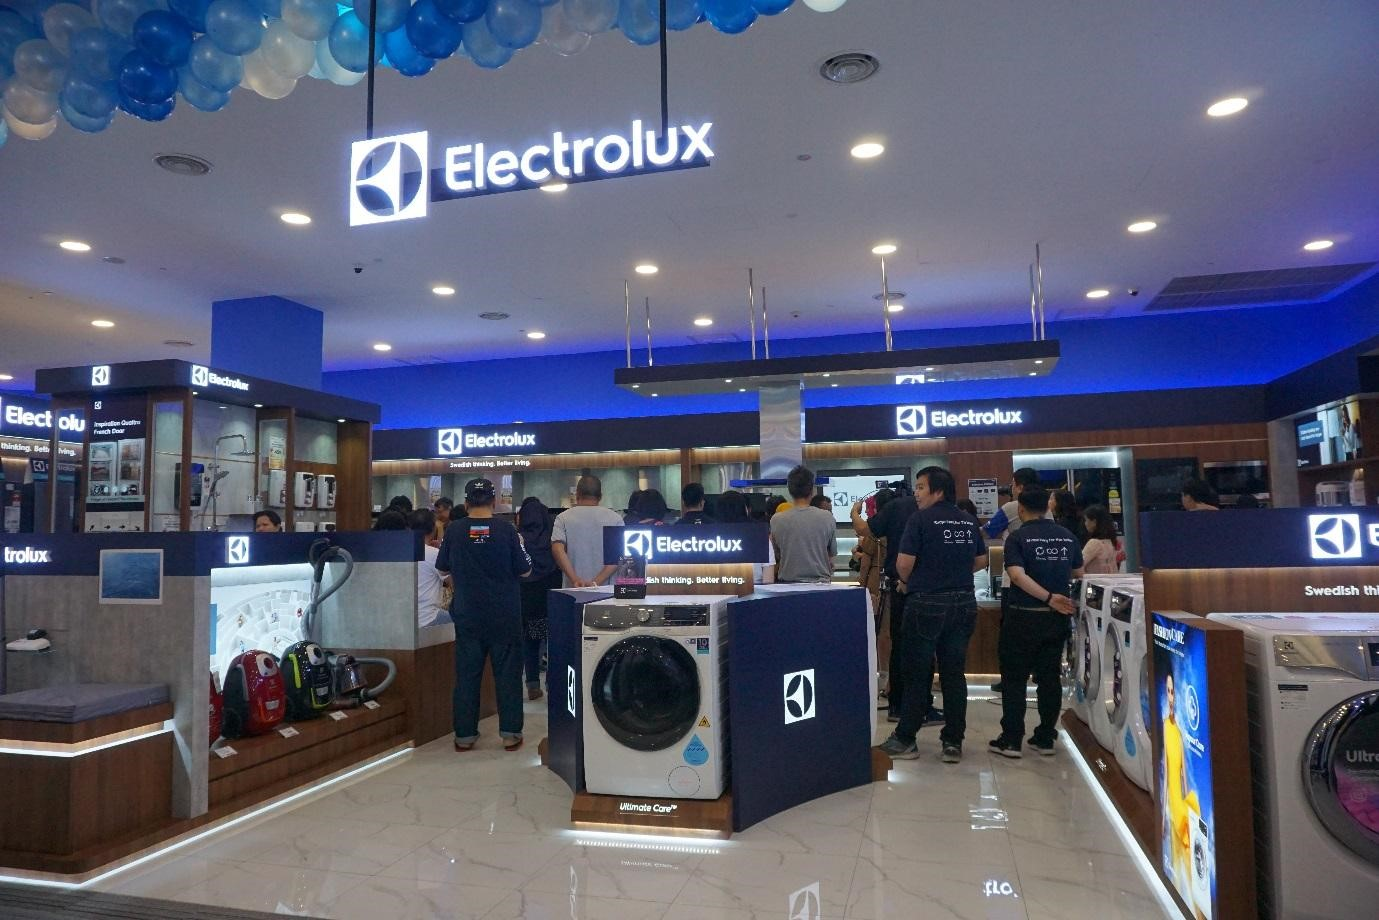 Electrolux Grand Opening at TBM Central i-City